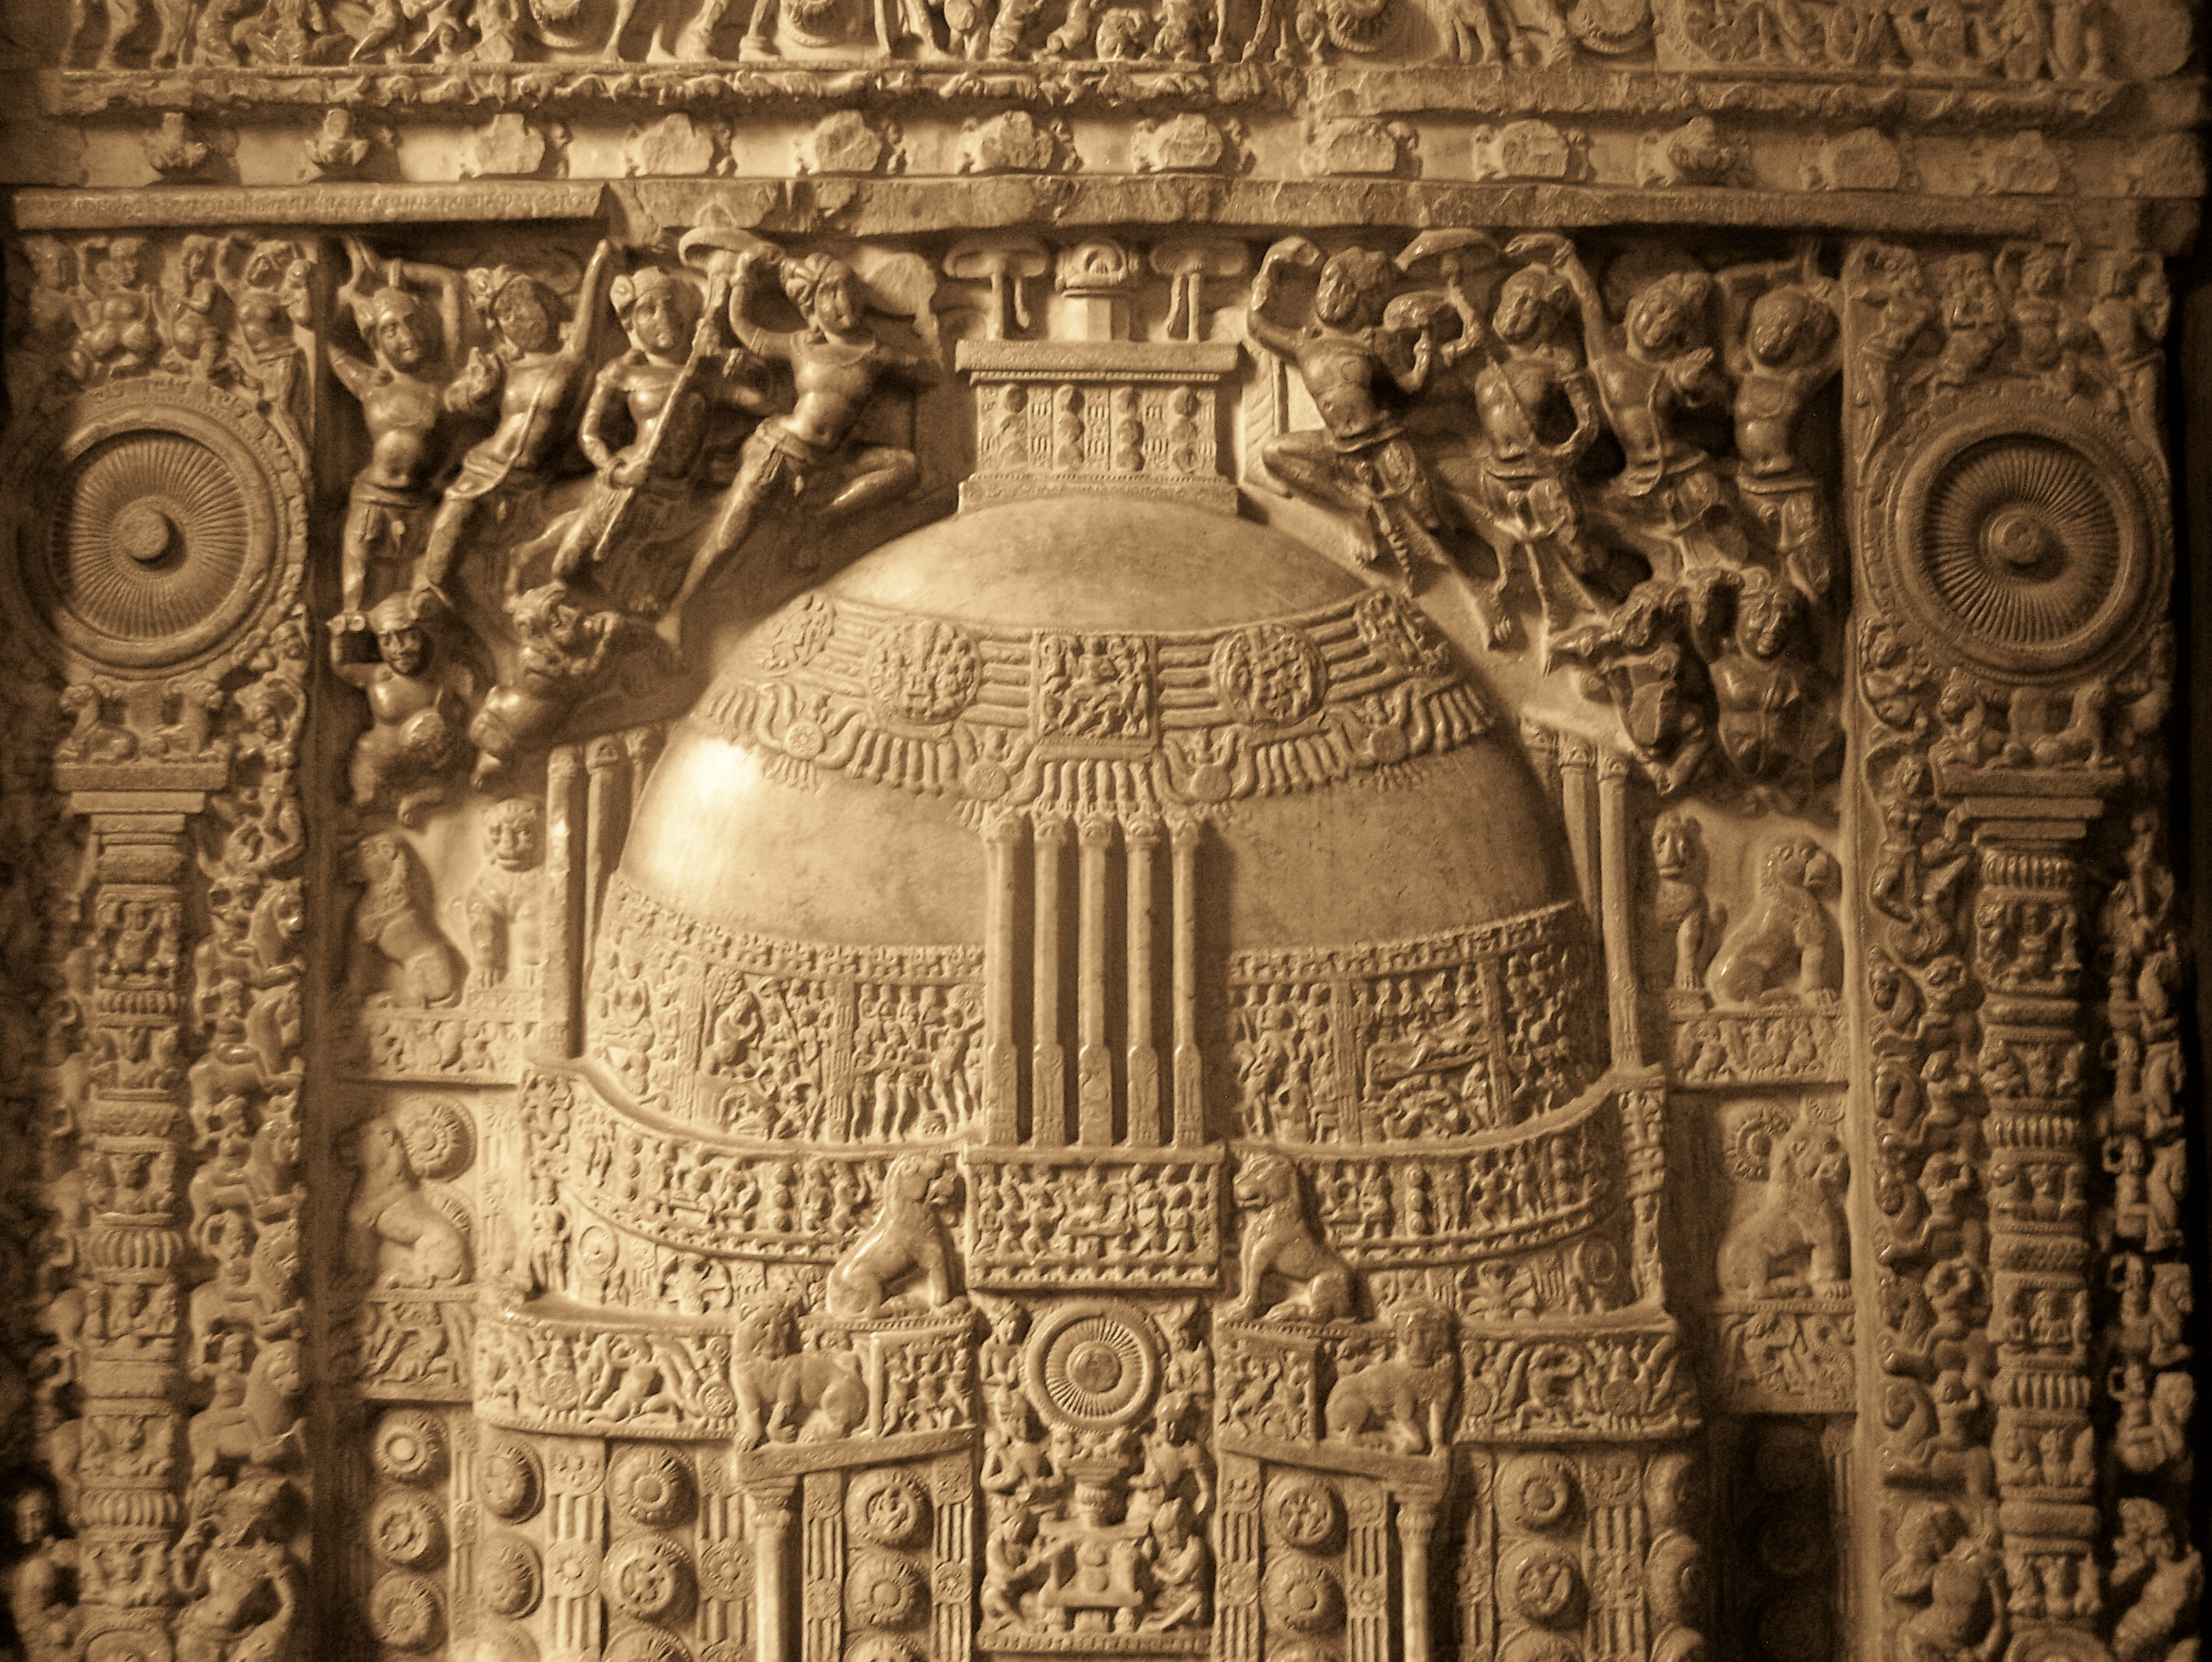 https://i1.wp.com/upload.wikimedia.org/wikipedia/commons/c/ce/Amaravati_Stupa_relief_at_Museum.jpg